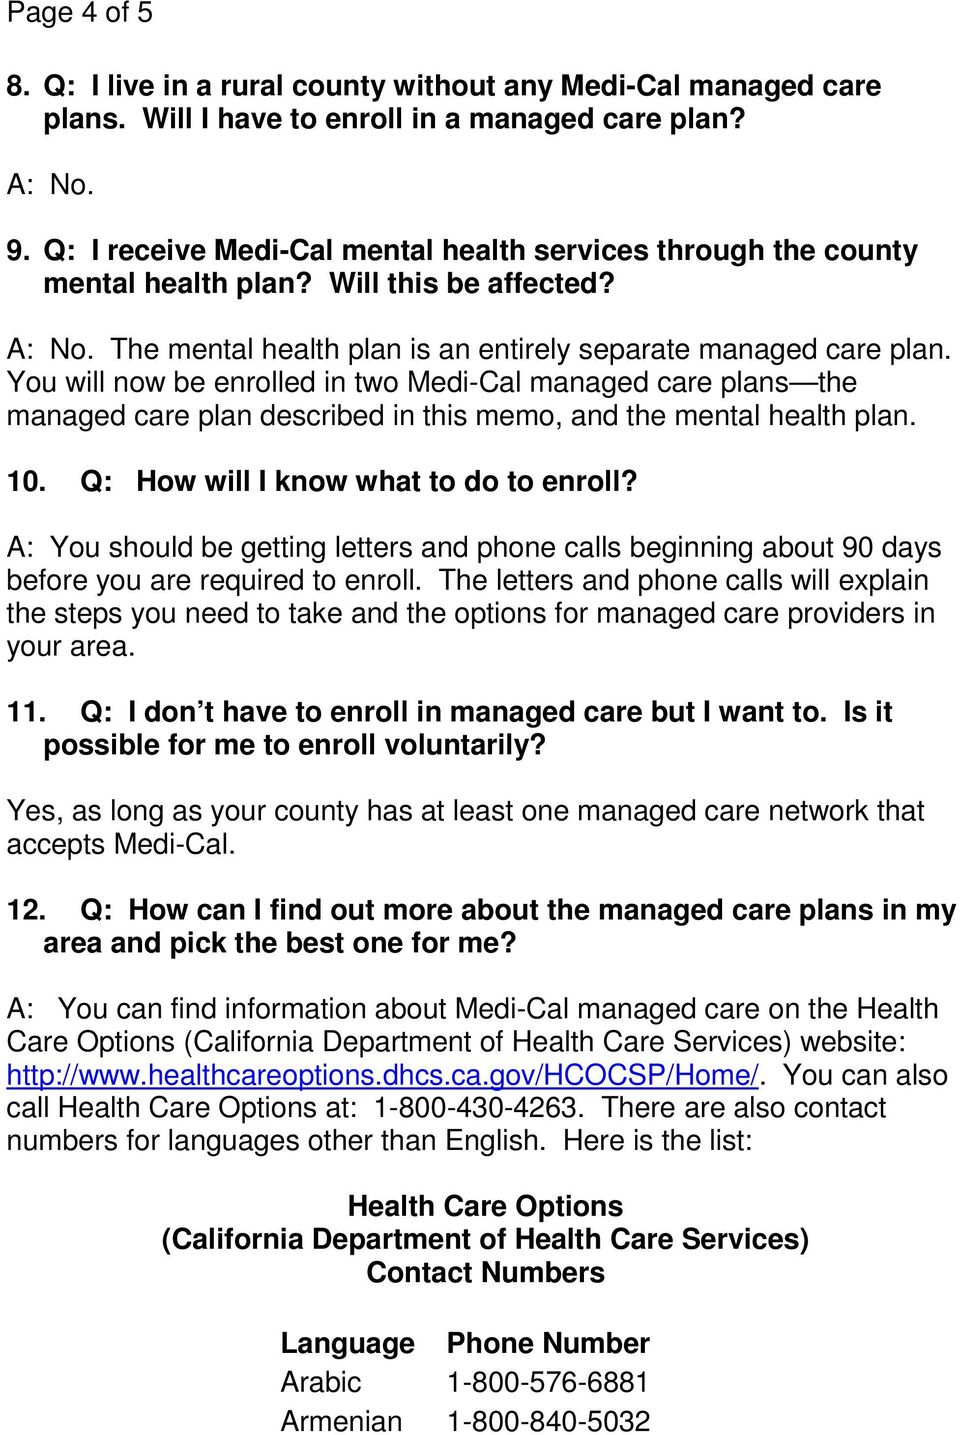 You will now be enrolled in two Medi-Cal managed care plans the managed care plan described in this memo, and the mental health plan. 10. Q: How will I know what to do to enroll?